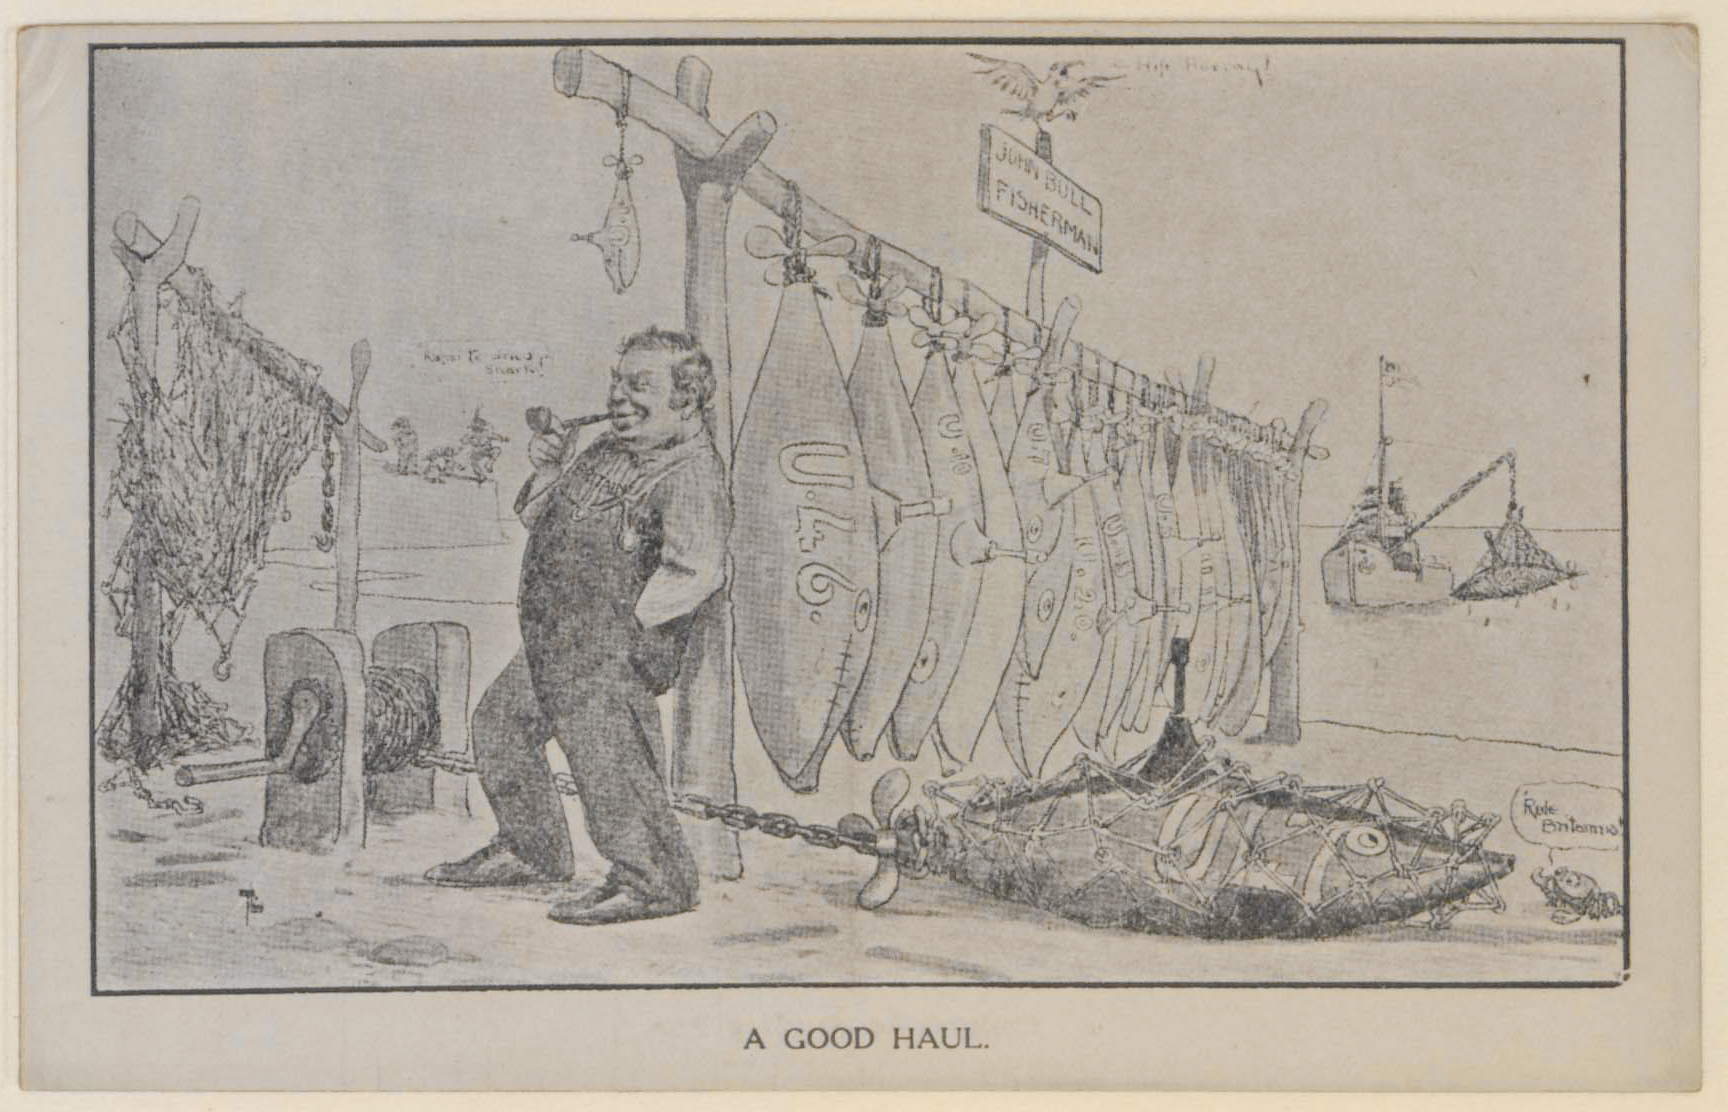 Satirical postcard from 1917 showing 'John Bull fisherman', a personification of Britain, with a haul of U-boats hung up to dry.